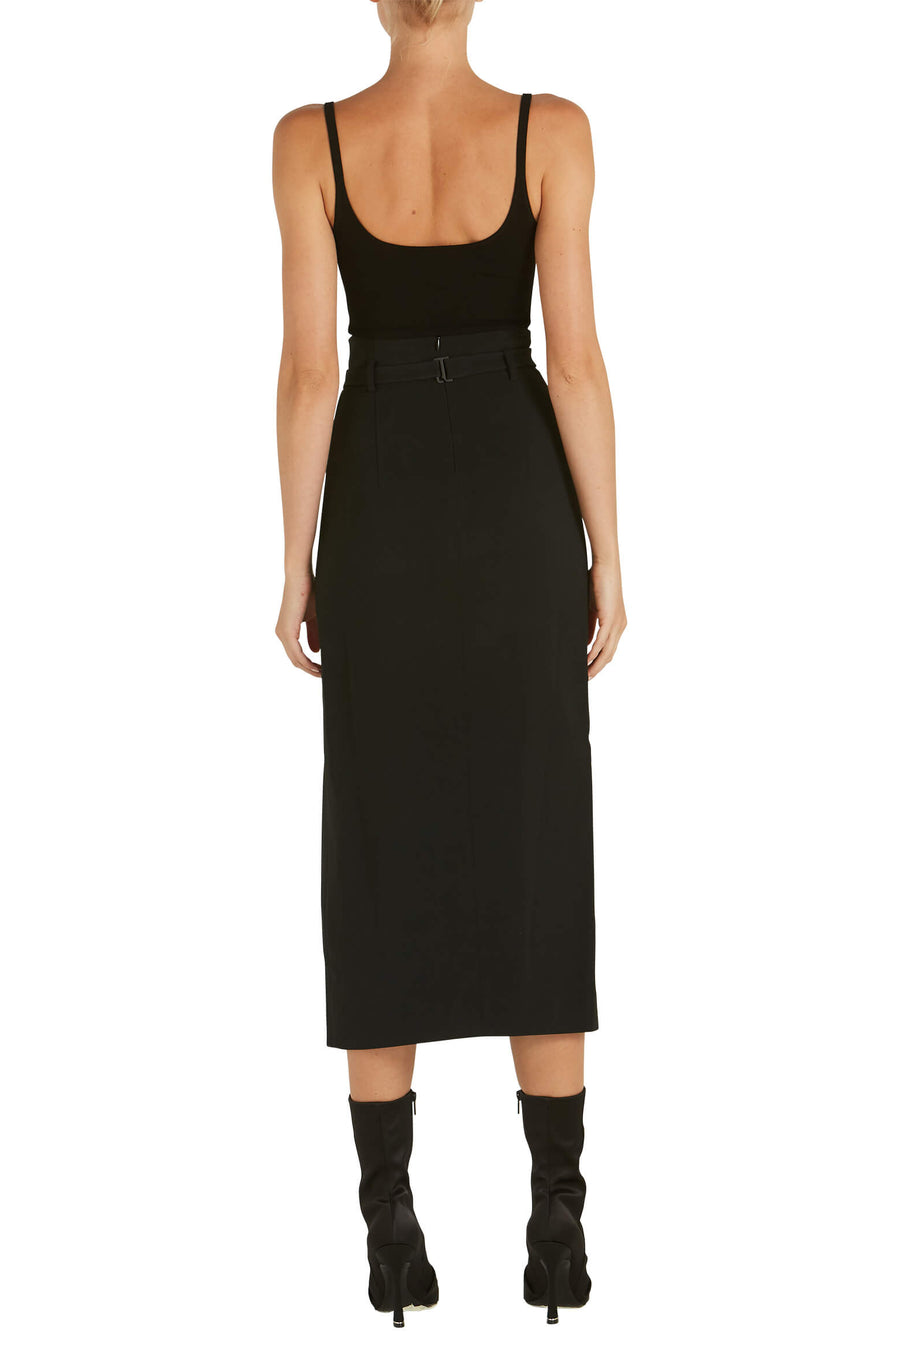 Dion-Lee-Garter-Bodysuit-Black-The-New-Trend